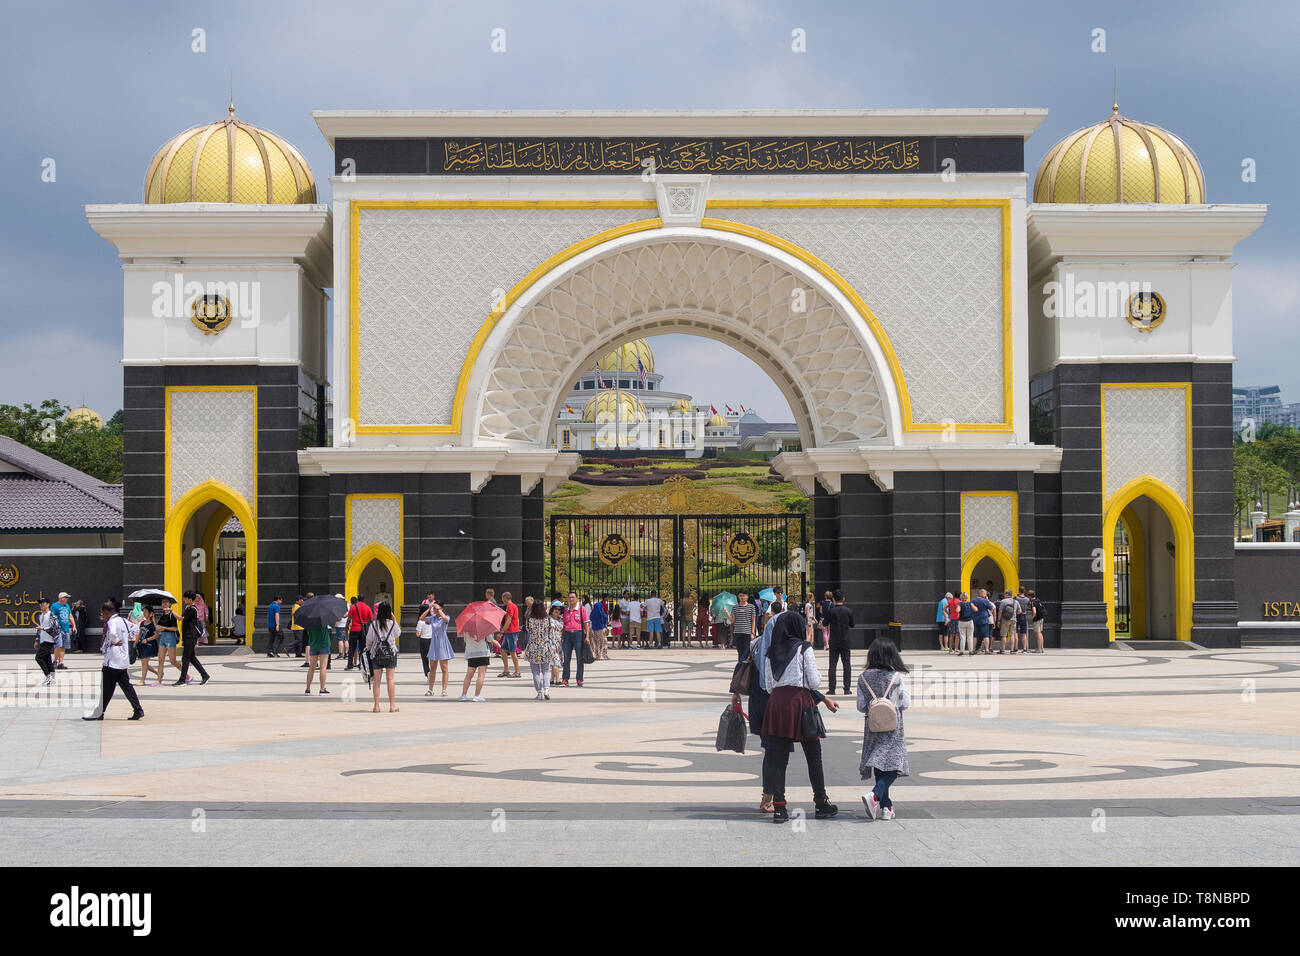 Kuala Lumpur, Malaysia - July 21, 2018; The entrance of the Istana Negara the Palace of the Sultan of Malaysia with tourist in front of the palace - Stock Image